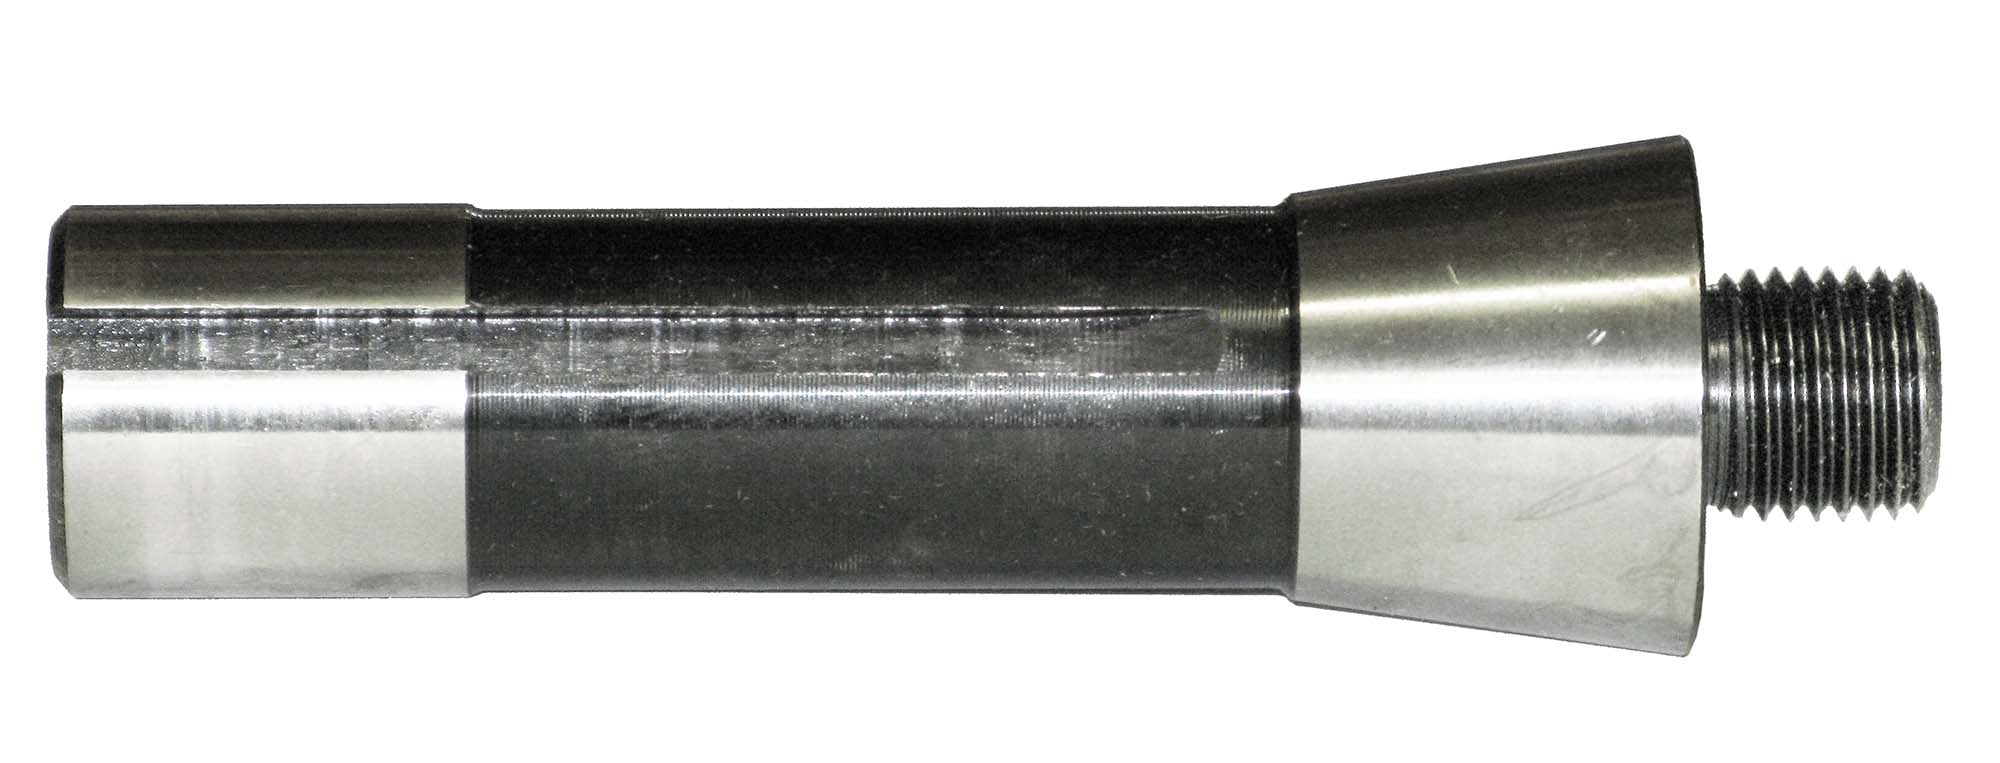 "R8 to 5/8""-16 Threaded Drill Chuck Arbor"